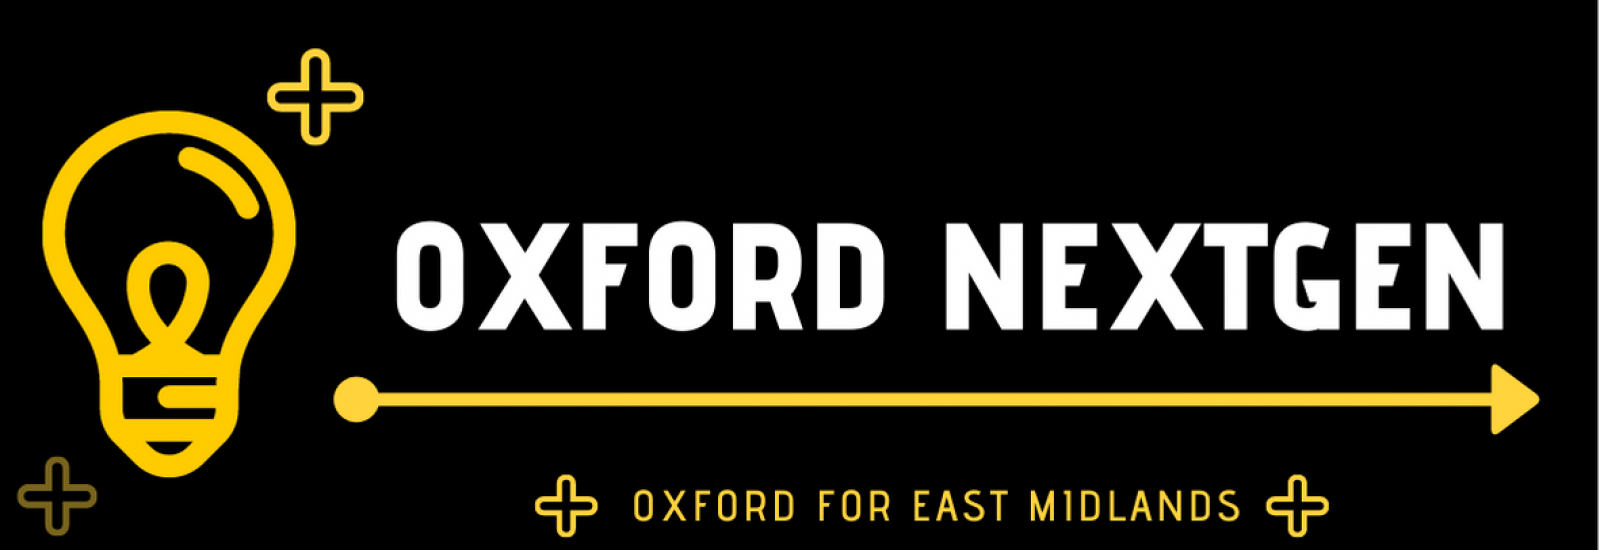 A yellow lightbulb line drawing next to Oxford NextGen, Oxford for East Midlands